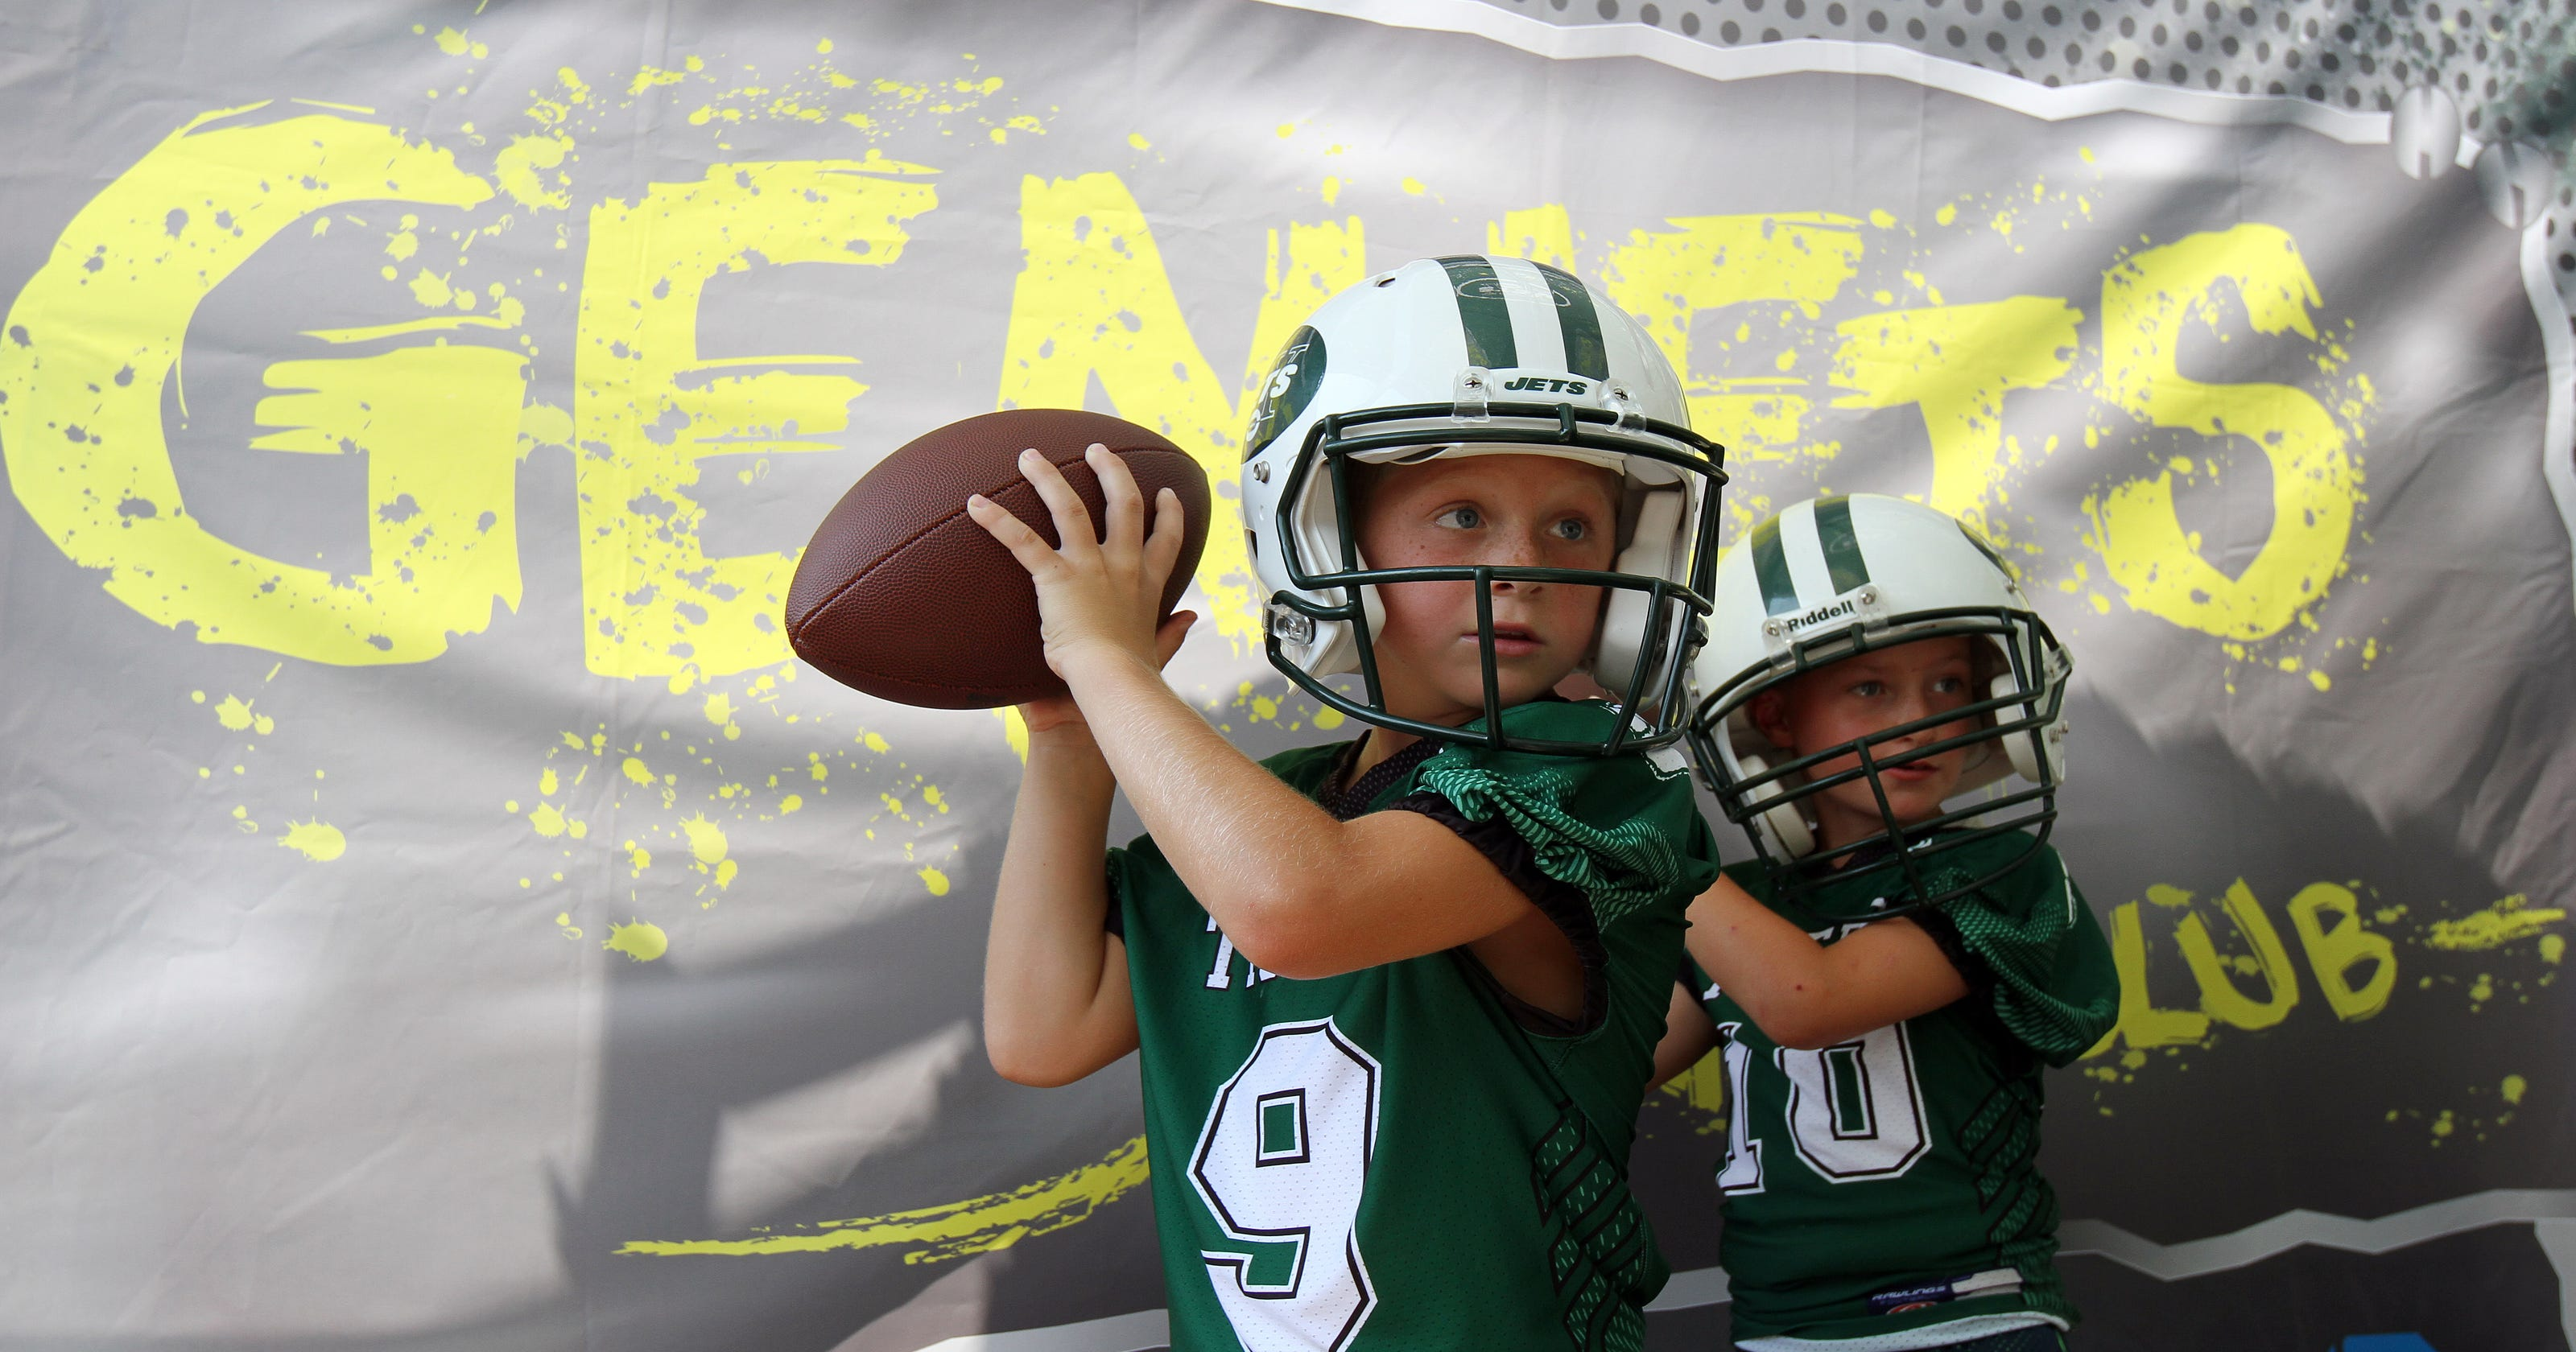 Jets open training camp to youth football players dea77b46c